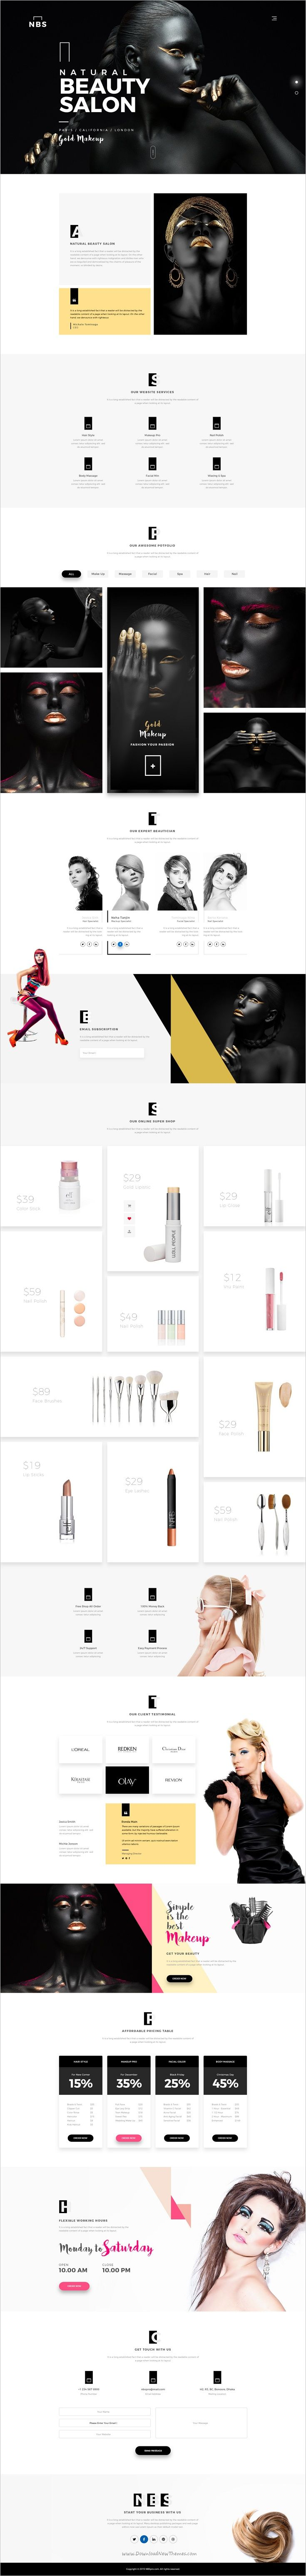 NBS is a Minimal #Onepage #PSD template for a beauty #Parlor or #salon shop website with modern look download now➩ https://themeforest.net/item/natural-beauty-salon/19207848?ref=Datasata